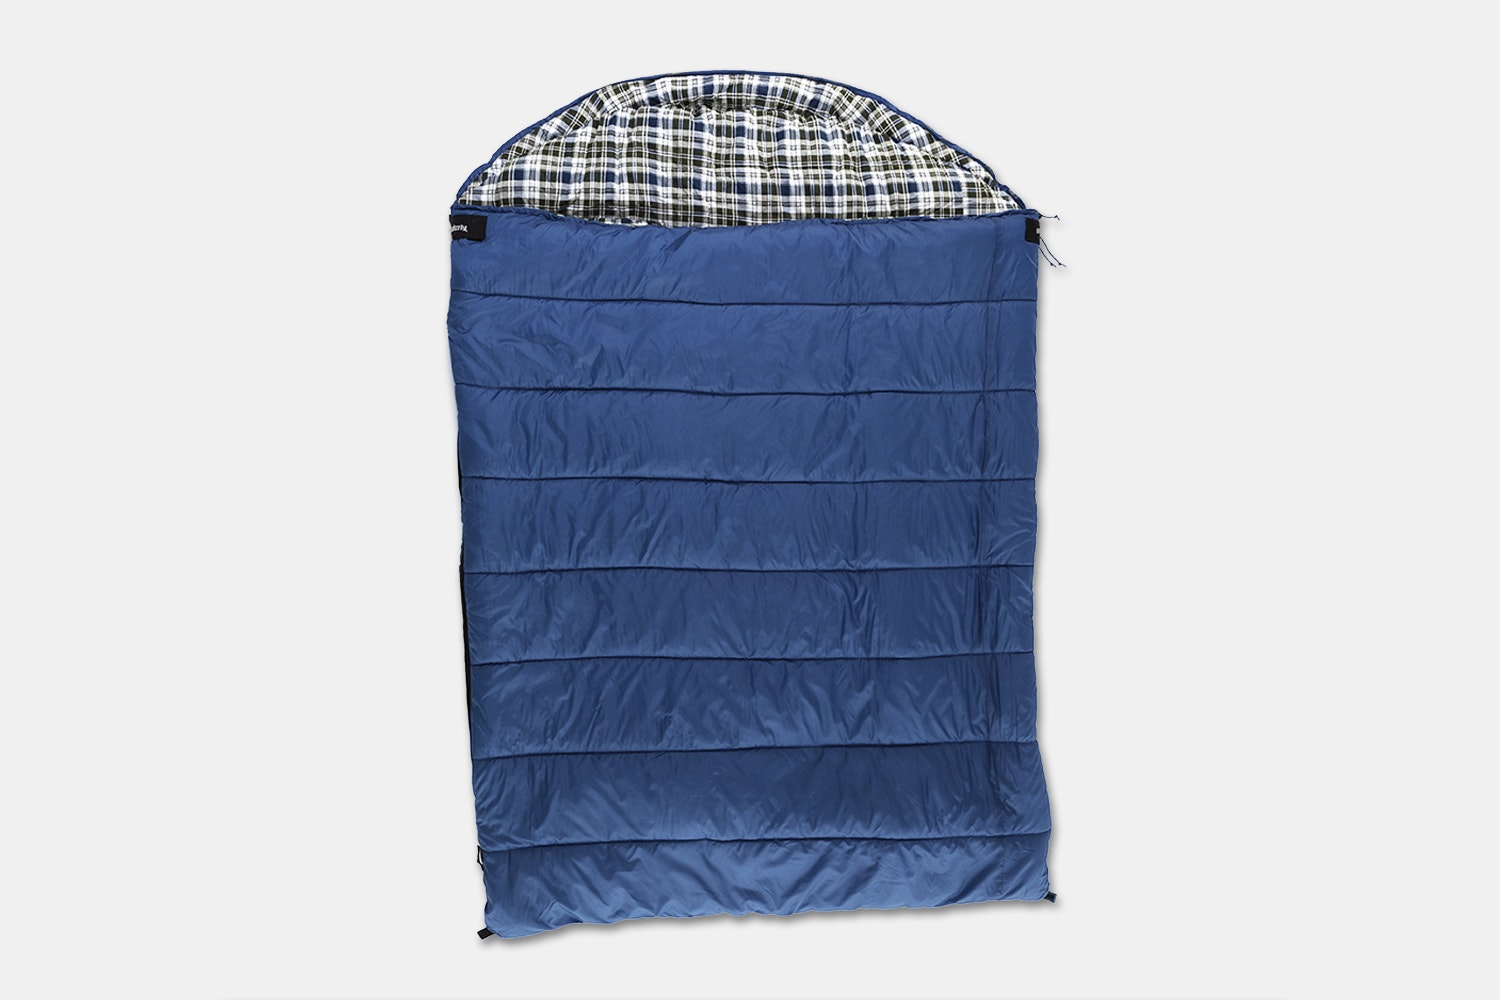 Grizzly 2 Person – 25 Degree – Ripstop –Slate Blue (+ $35)